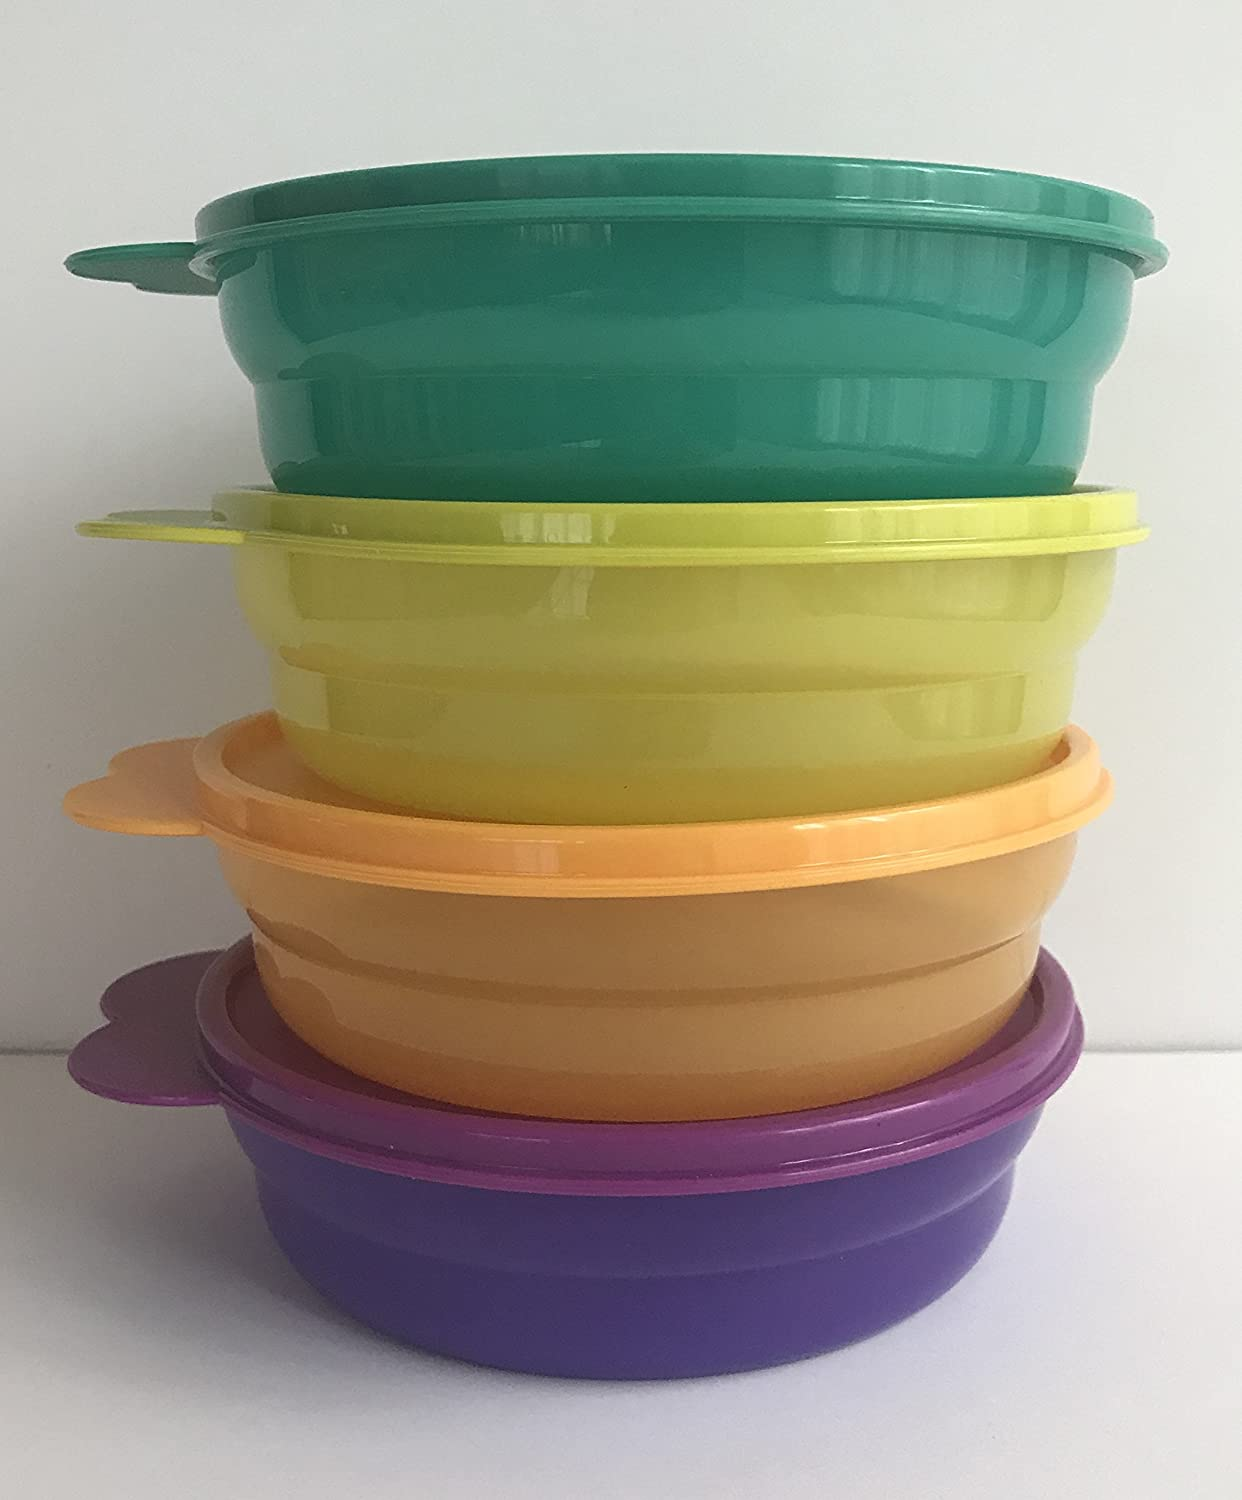 New Tupperware Microwaveable Cereal Soup Bowls With Air Tight Spill Proof Lids, 4 Colors